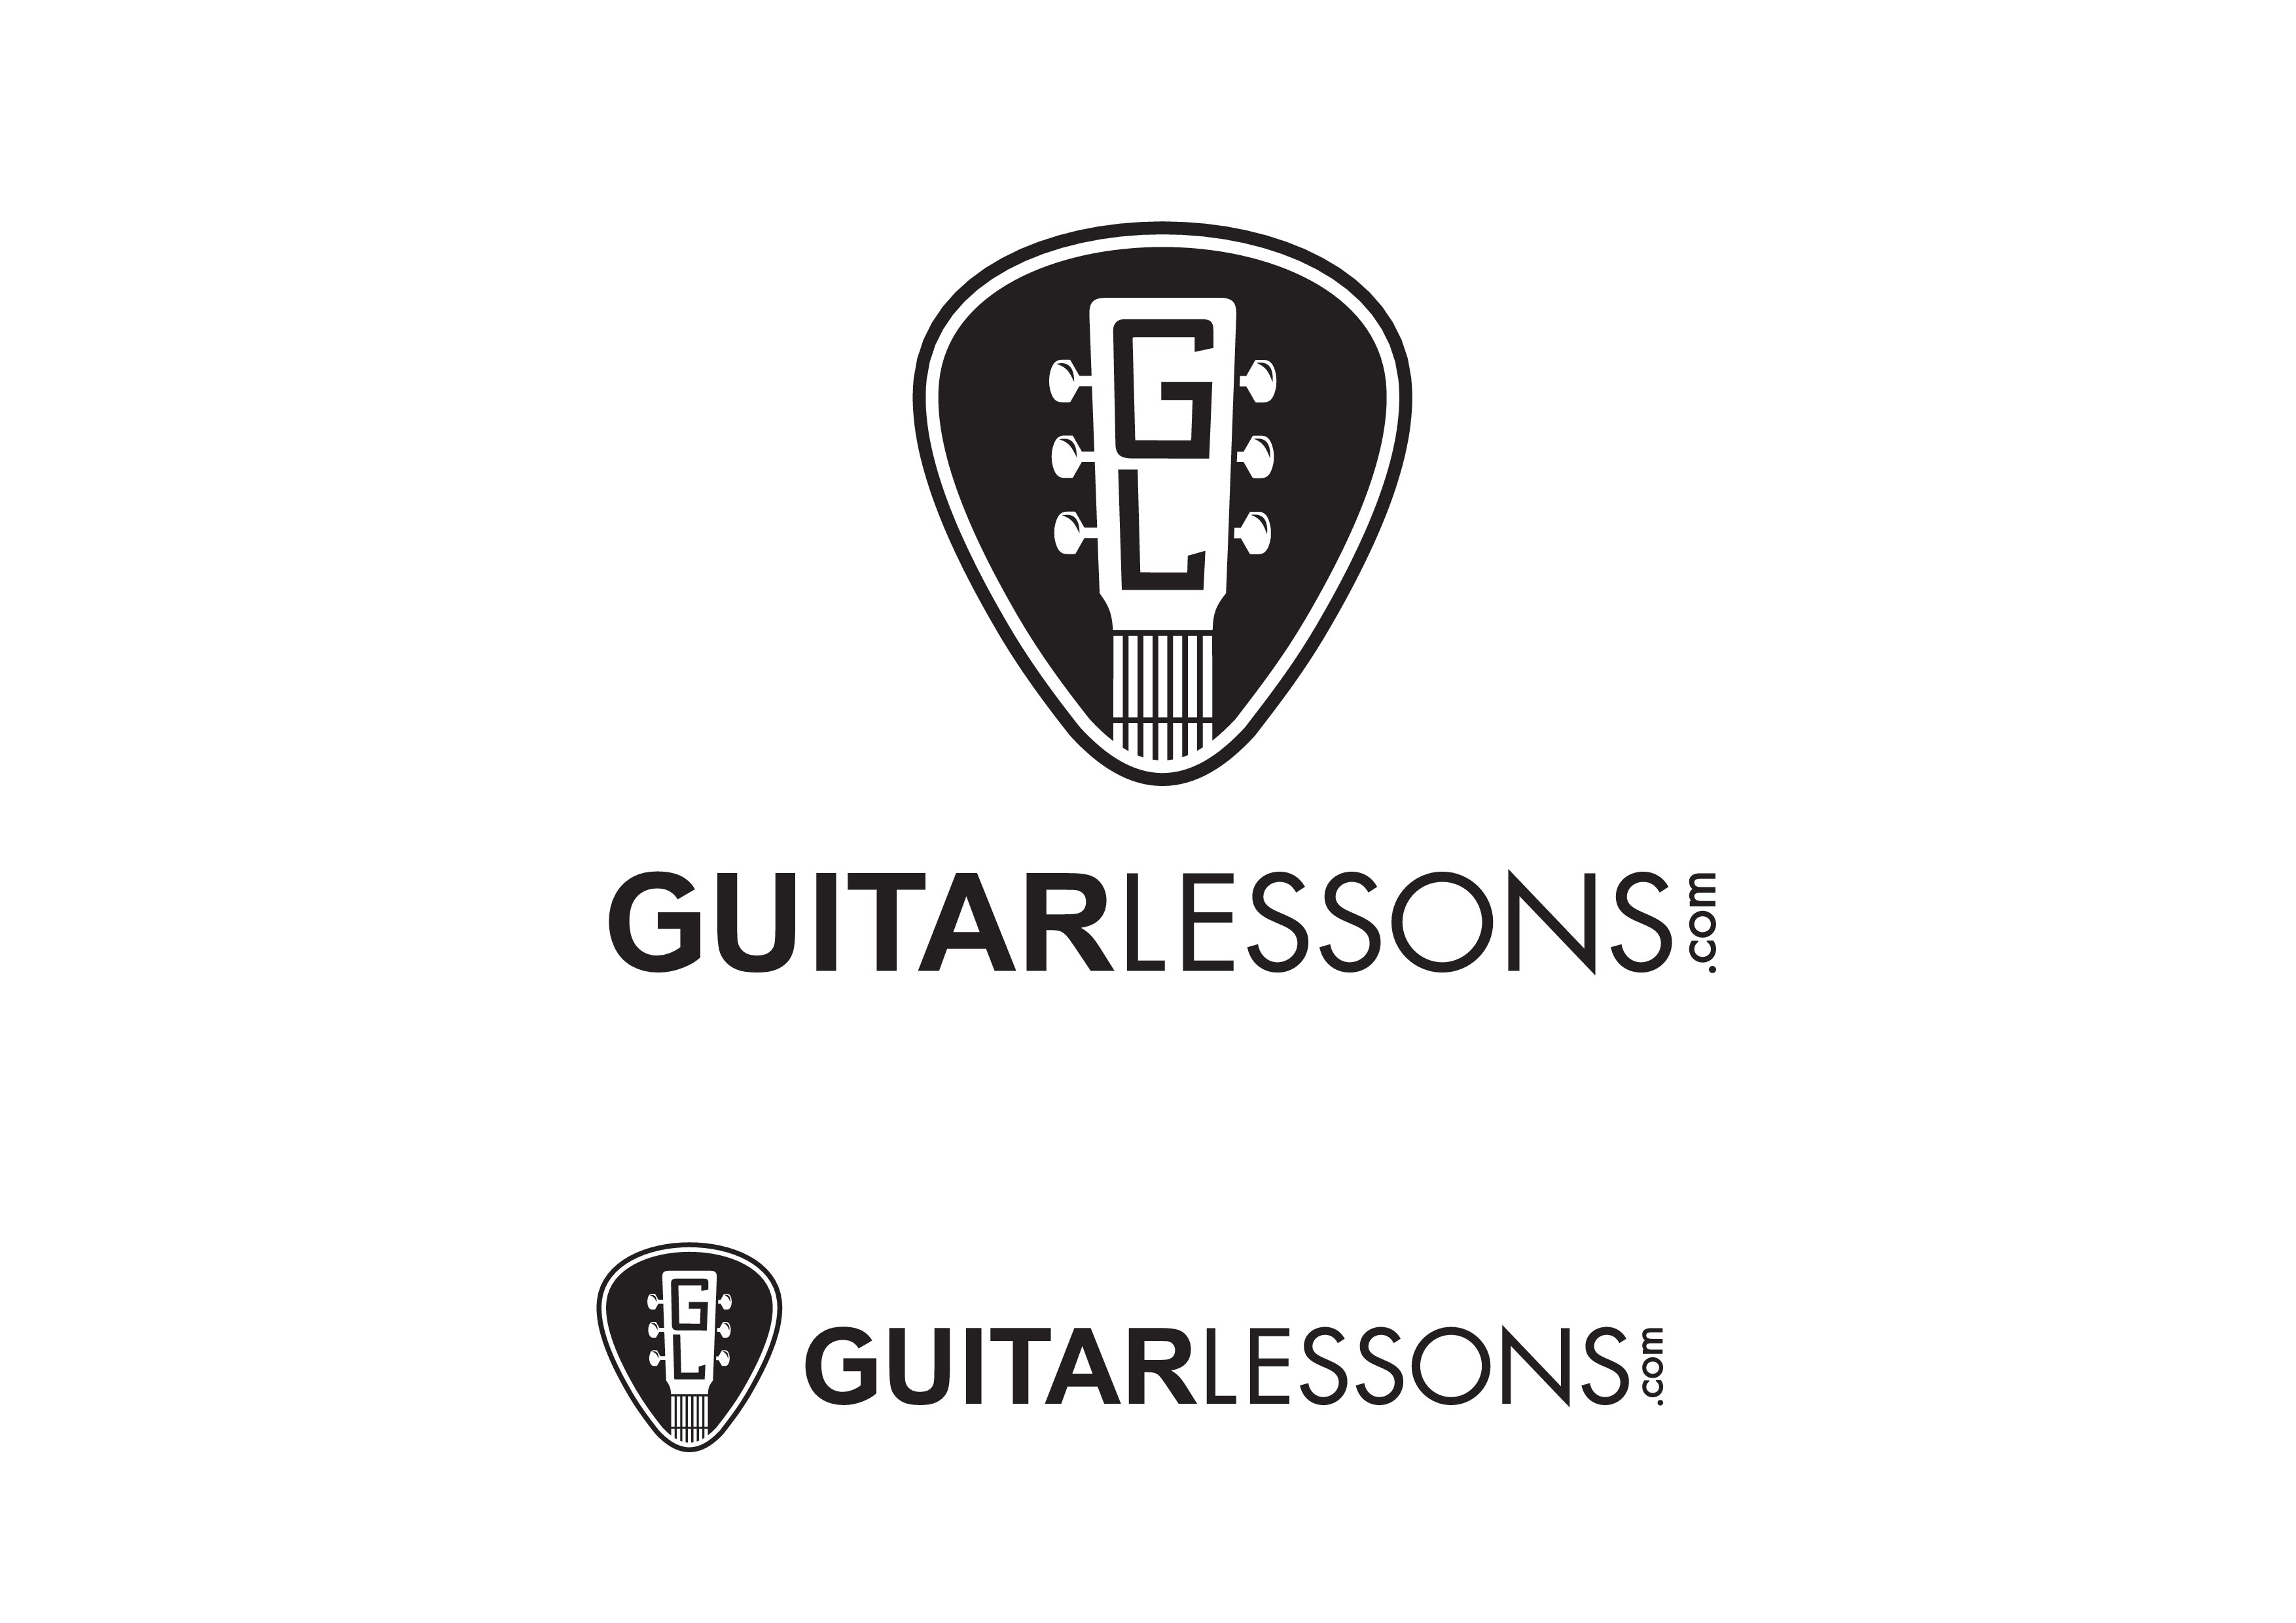 Create an inspiring logo for GuitarLessons.com students